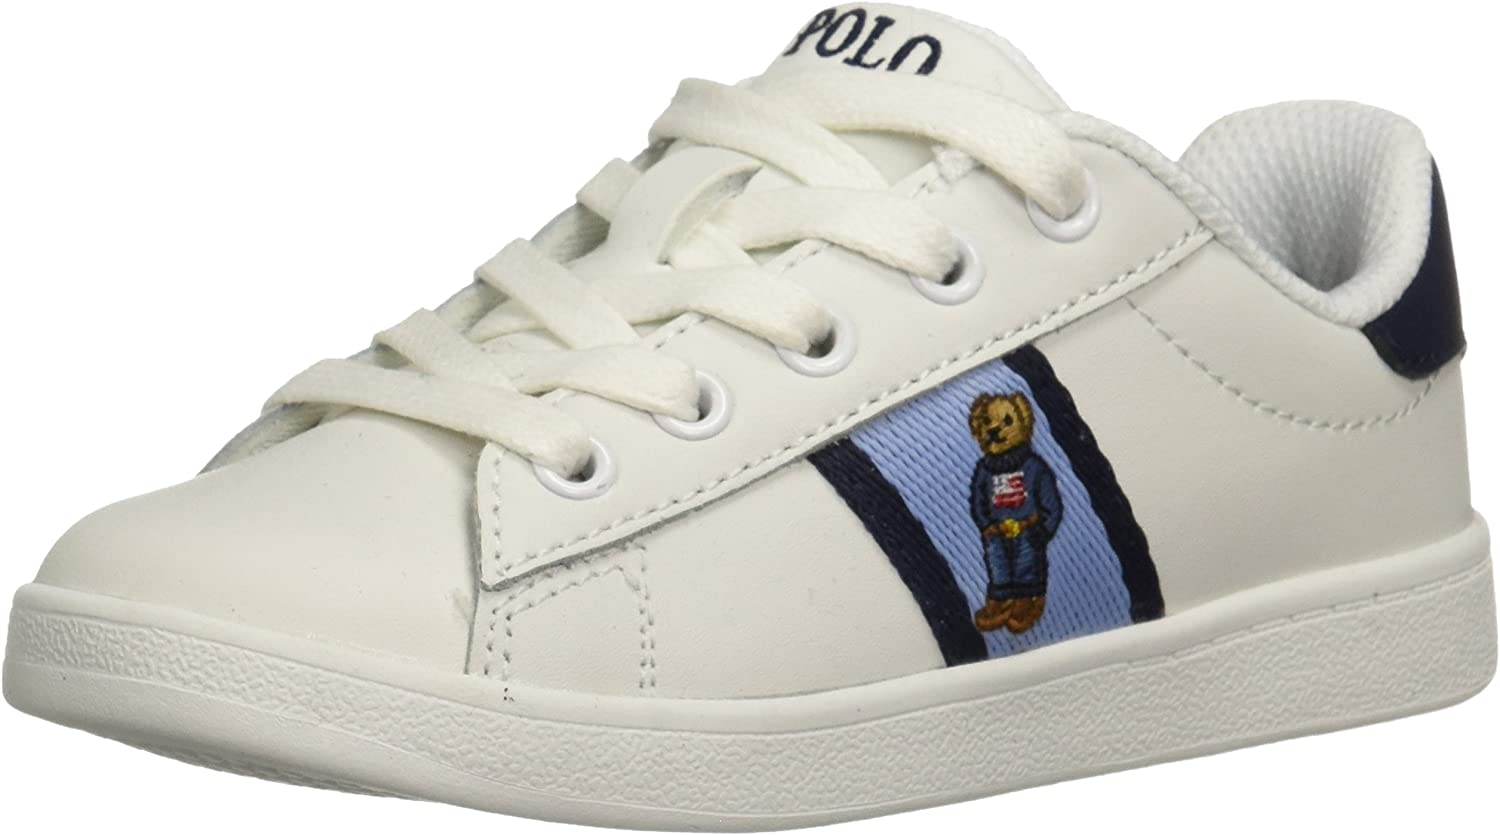 Polo Ralph Lauren Kids Boys' QUILTON Bear Sneaker, White Leather Blue/Navy Striping, 4.5 Medium US Big Kid